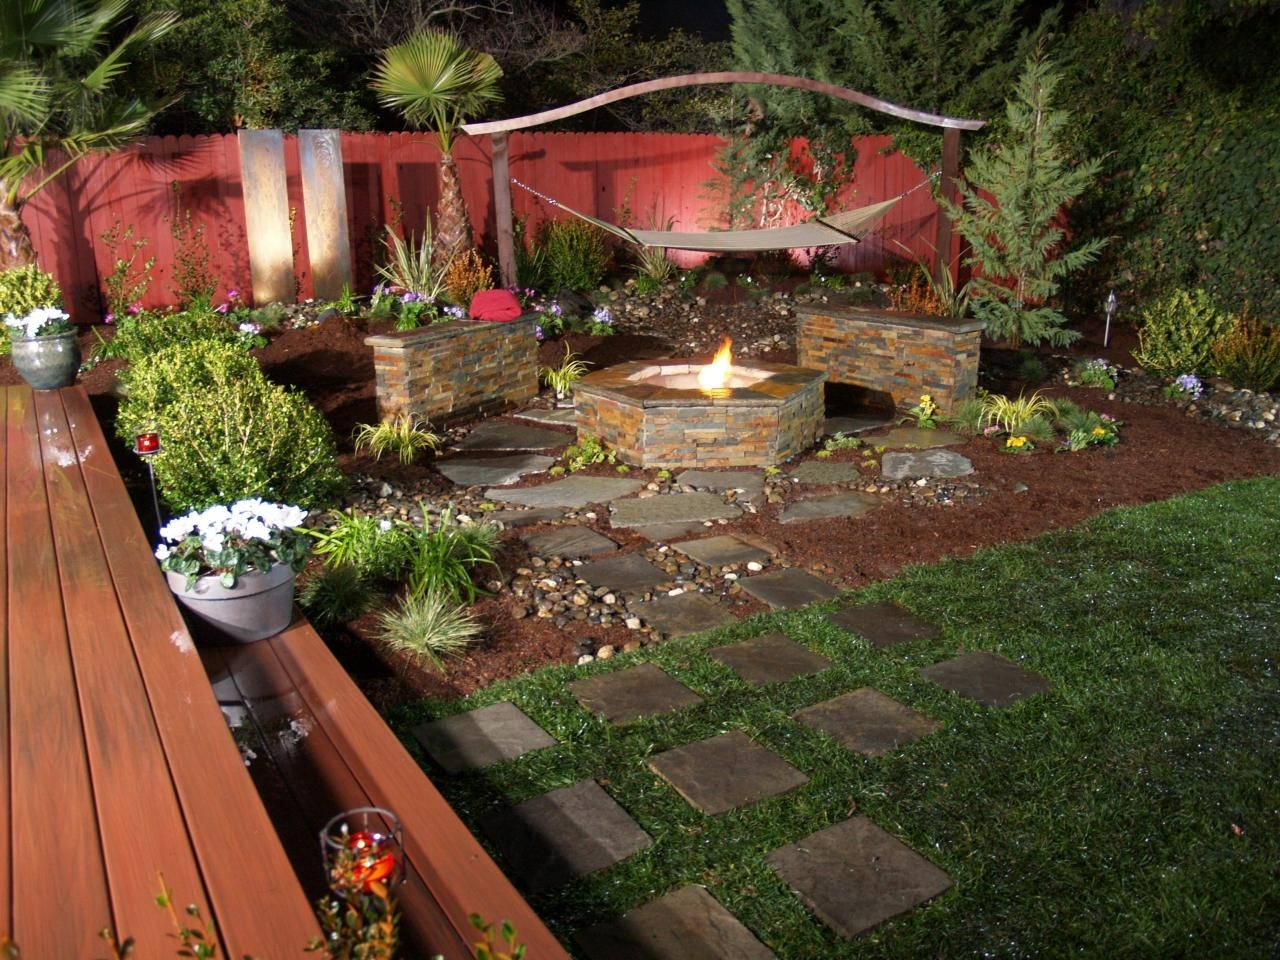 10 Fashionable Homemade Outdoor Fire Pit Ideas %name 2020